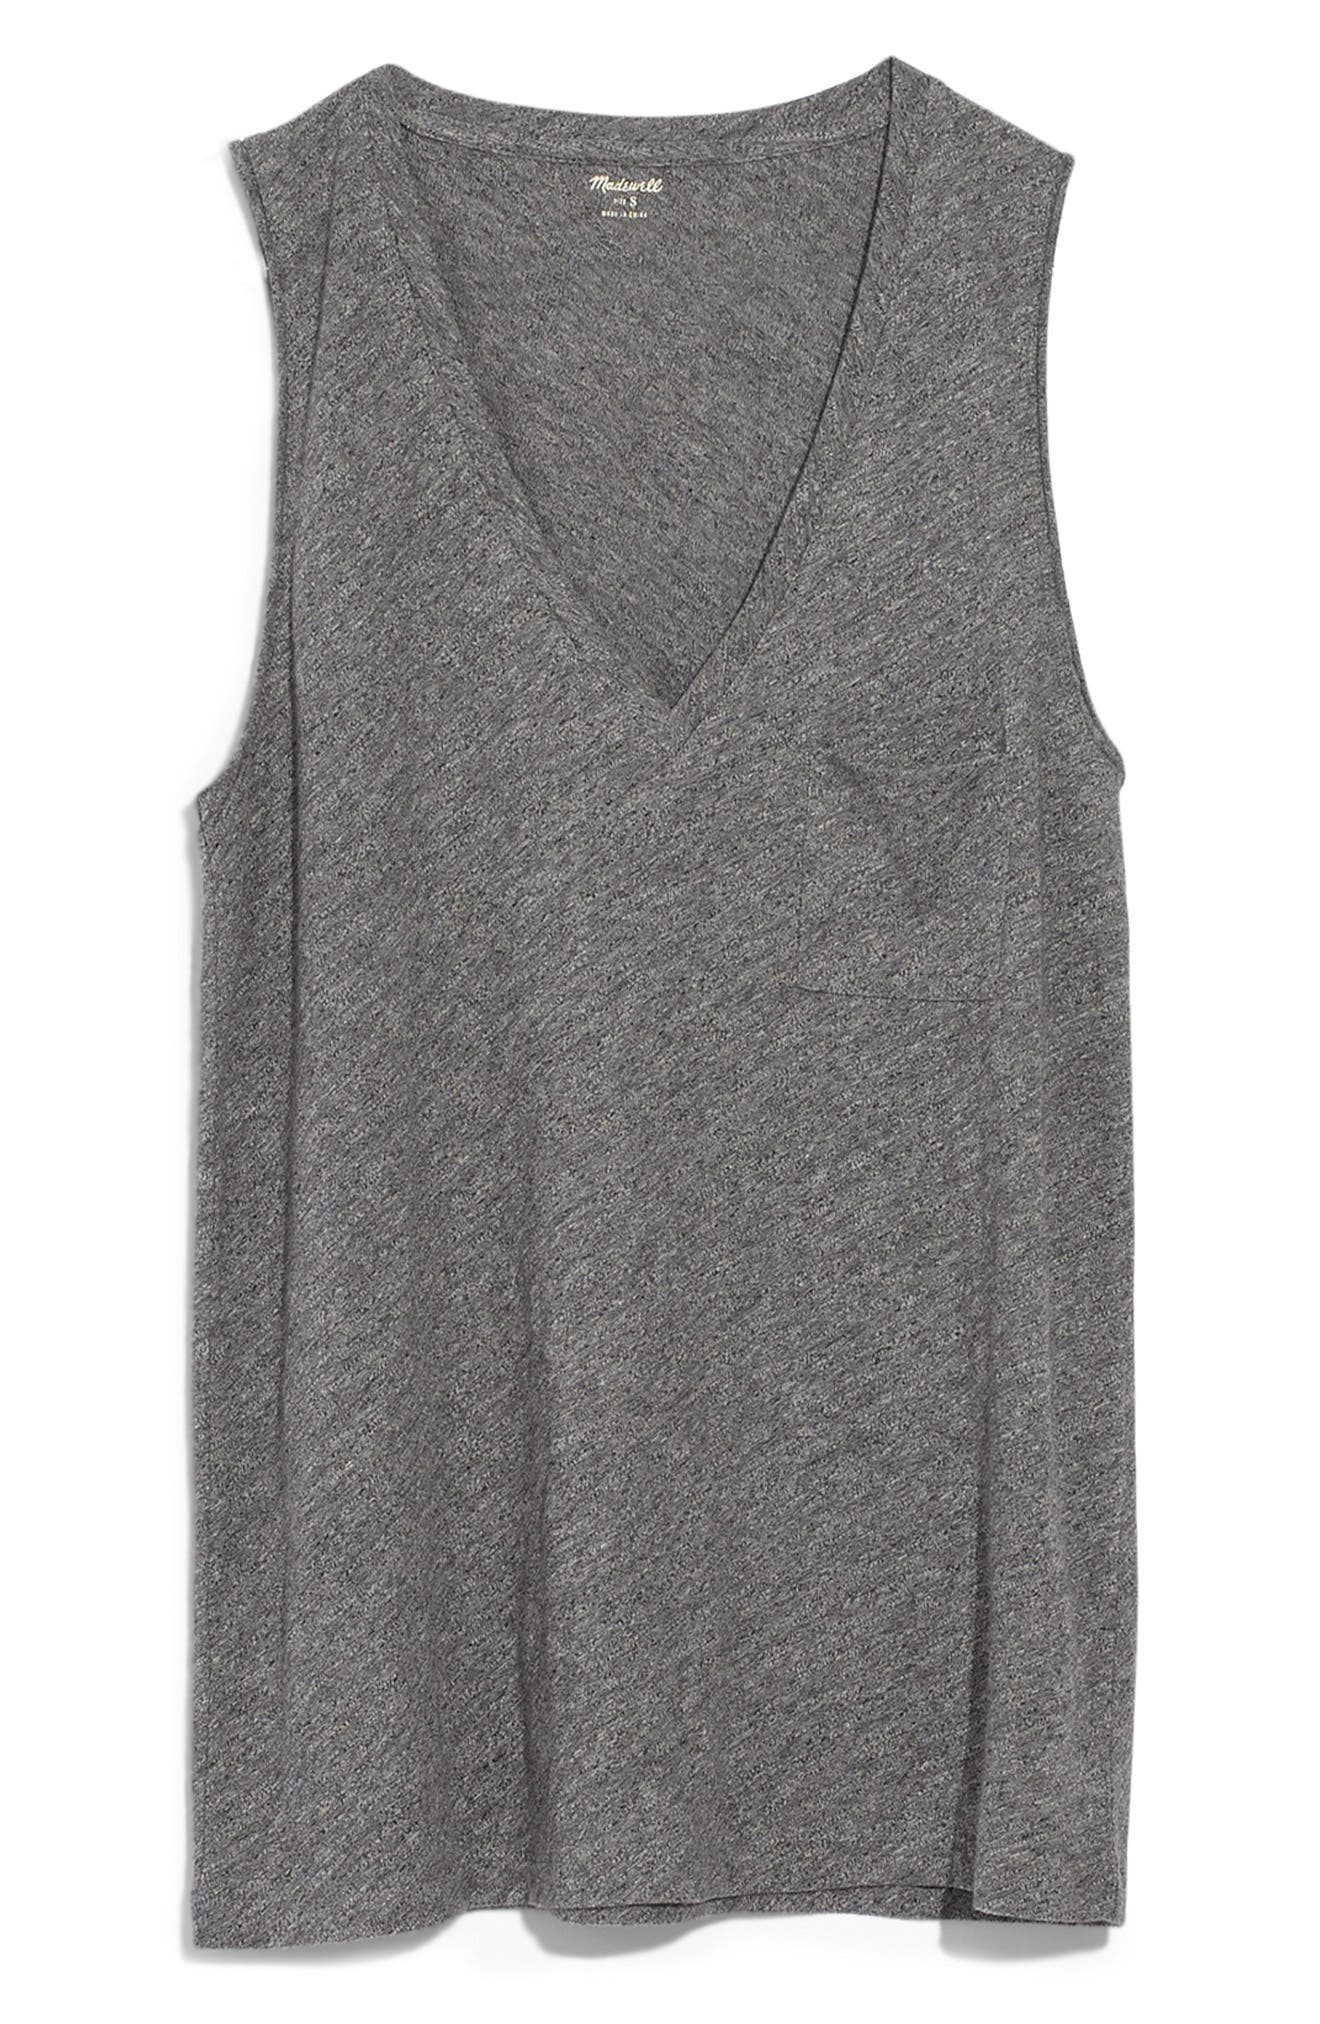 MADEWELL,                             Whisper Cotton V-Neck Tank,                             Main thumbnail 1, color,                             HEATHER MERCURY